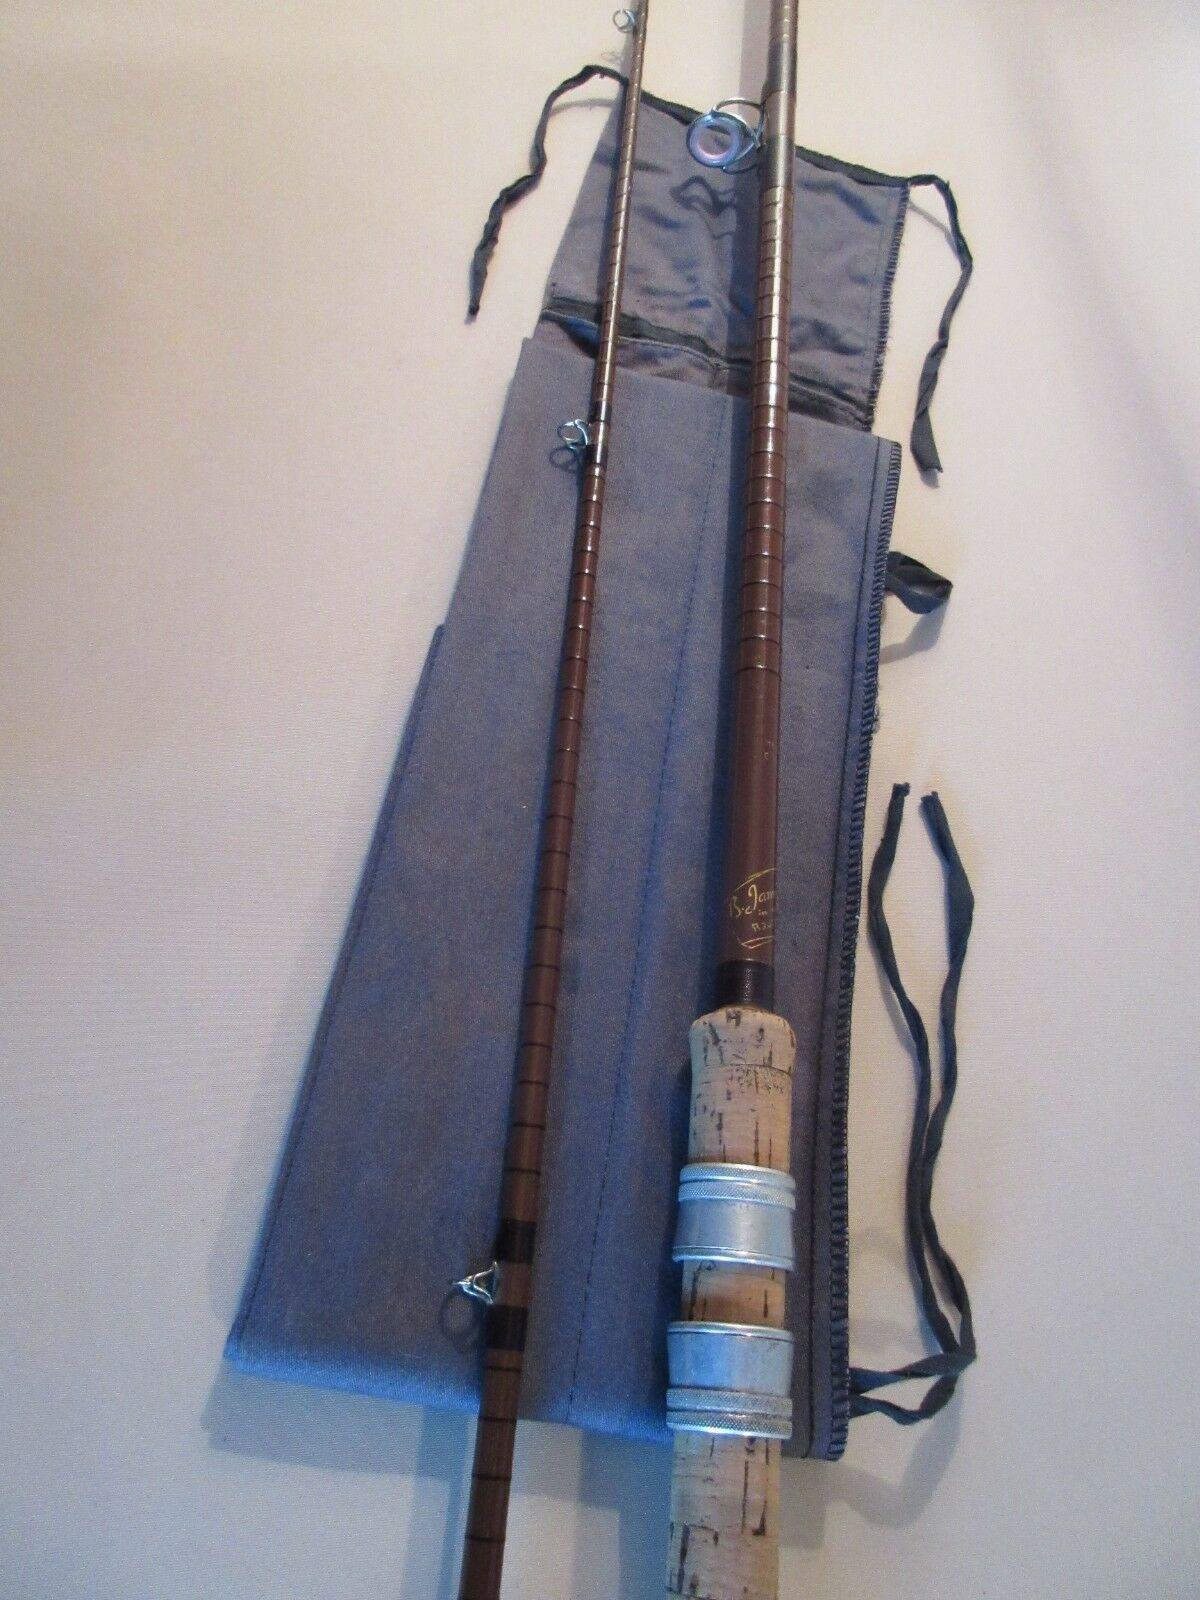 B. James   Bruce & Walker  MkIV  Avon G  10' rod  classic fashion